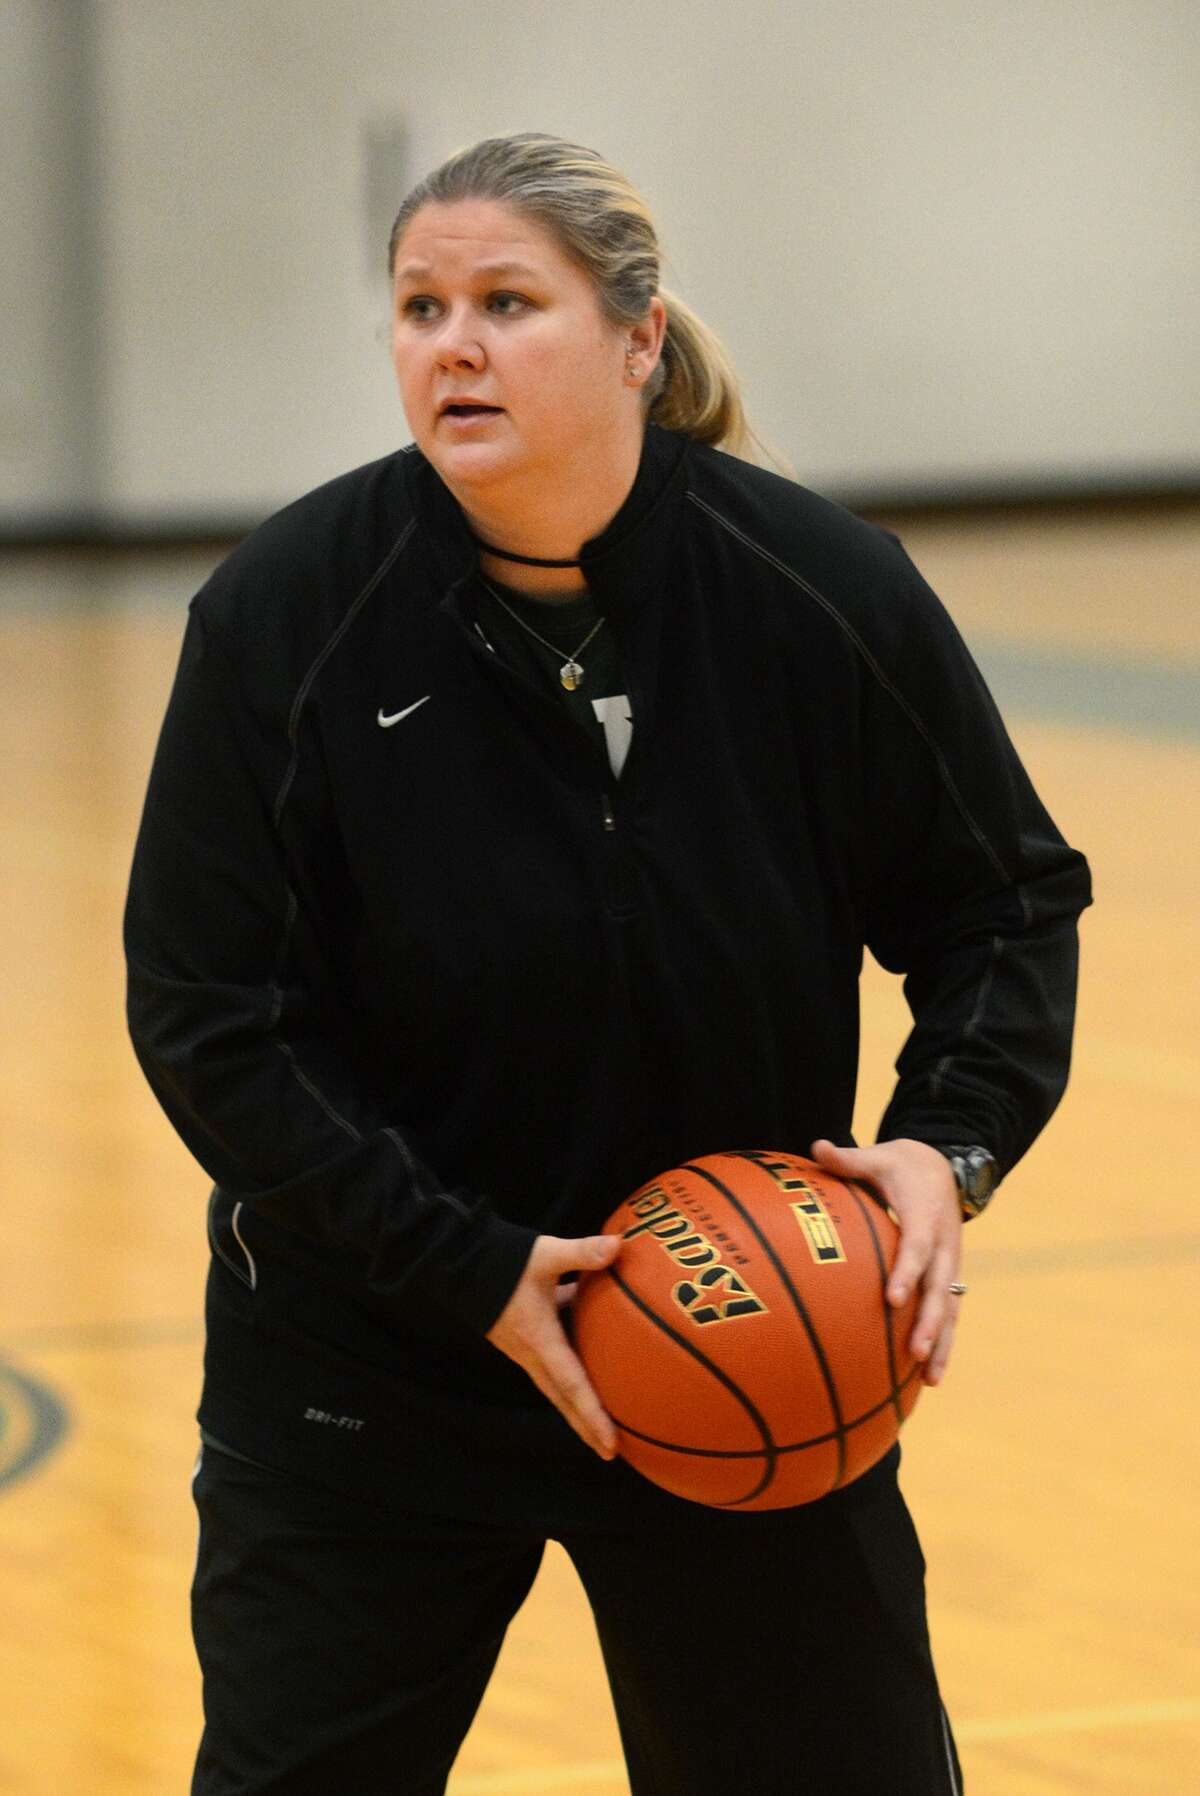 Kingwood Park Head Girls Basketball Coach LeighAnn Wolfe leads a drill during a team practice.